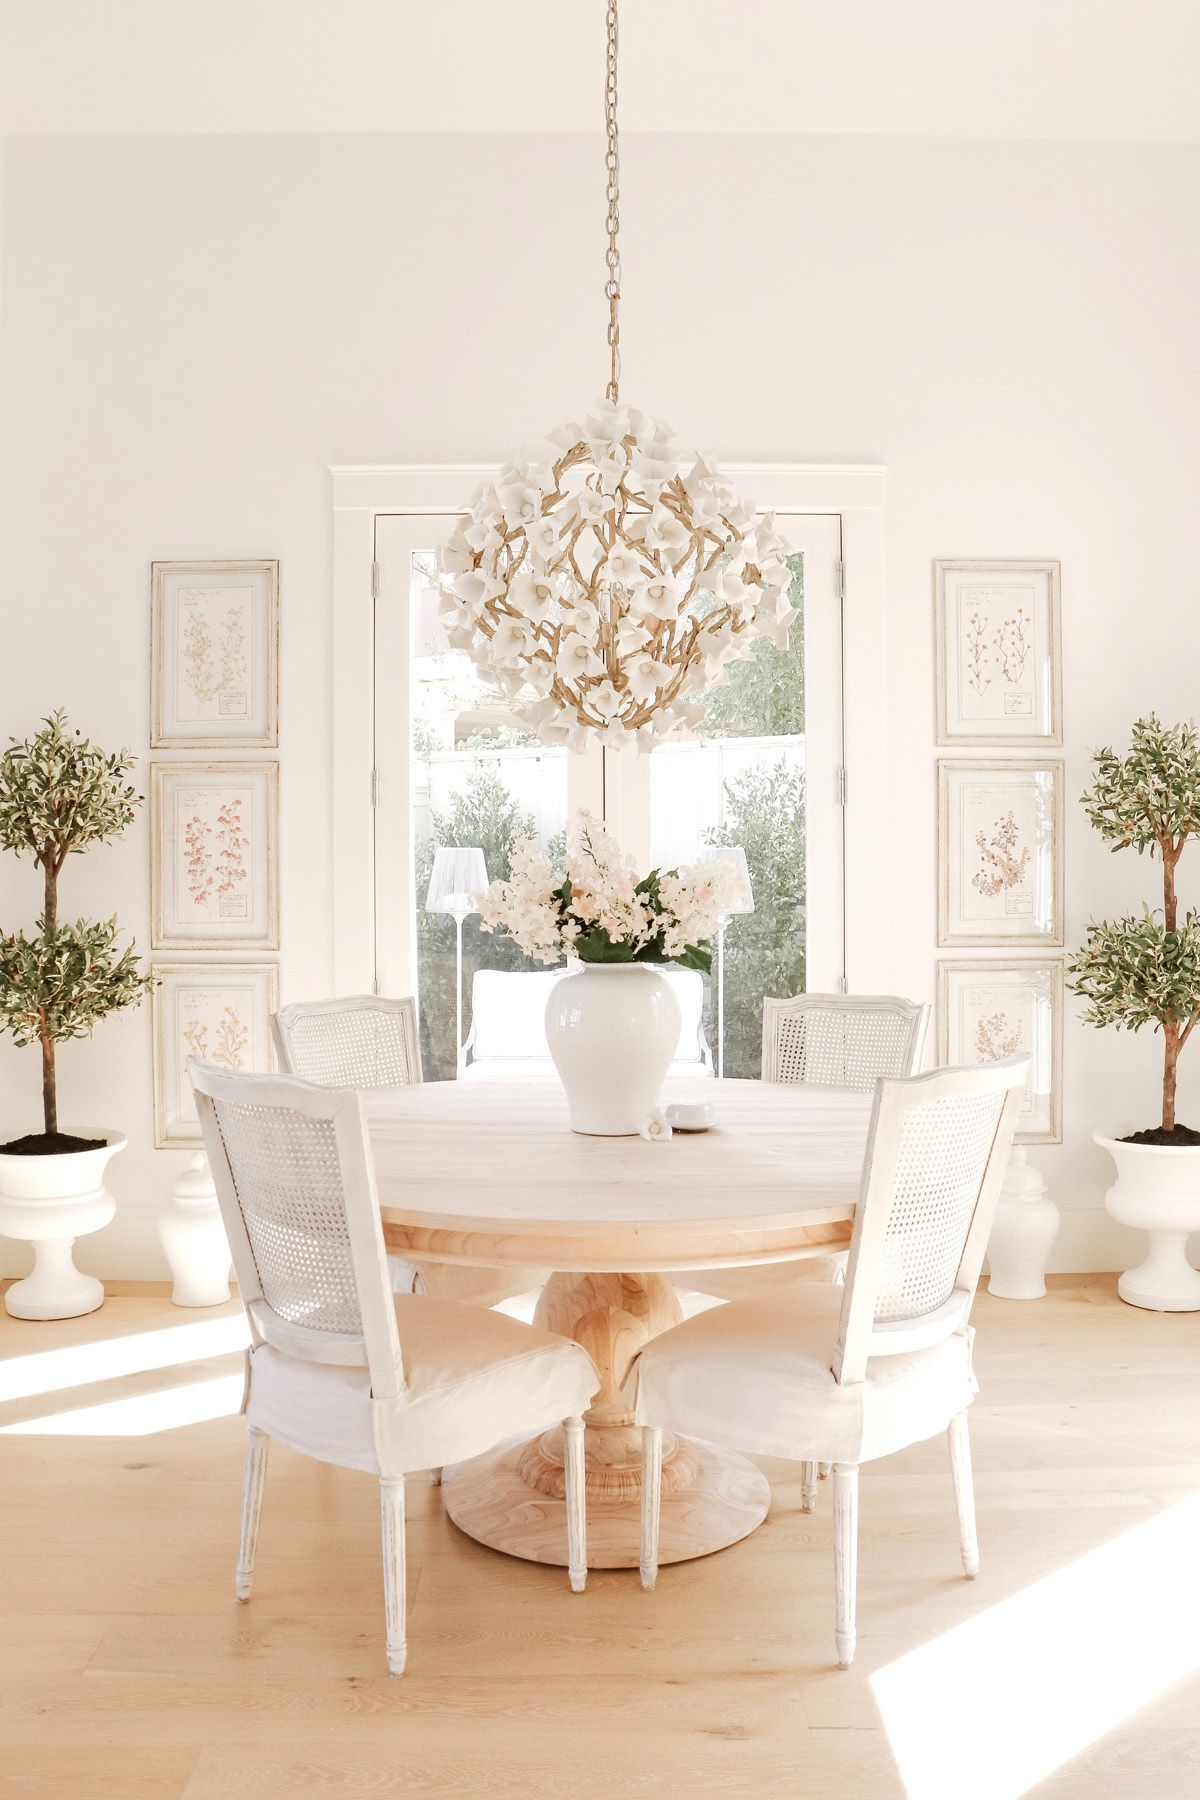 New French Inspired Pedestal Dining Table Kristywicks Com White Dining Room Dining Room Design Dining Room Inspiration